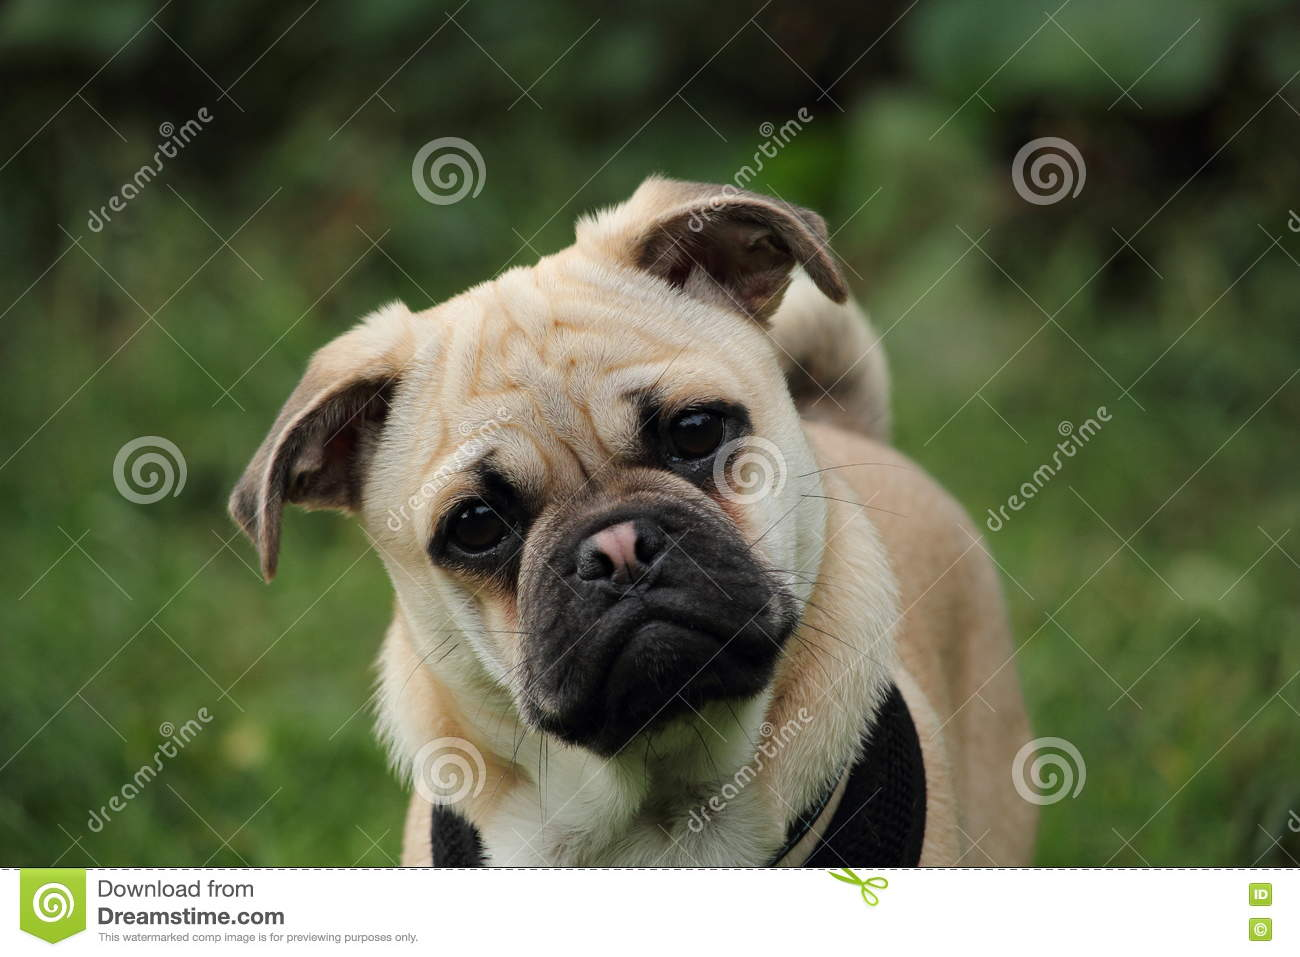 Pug Cross Jack Russell Puppy Stock Photo Image Of Cute Animal